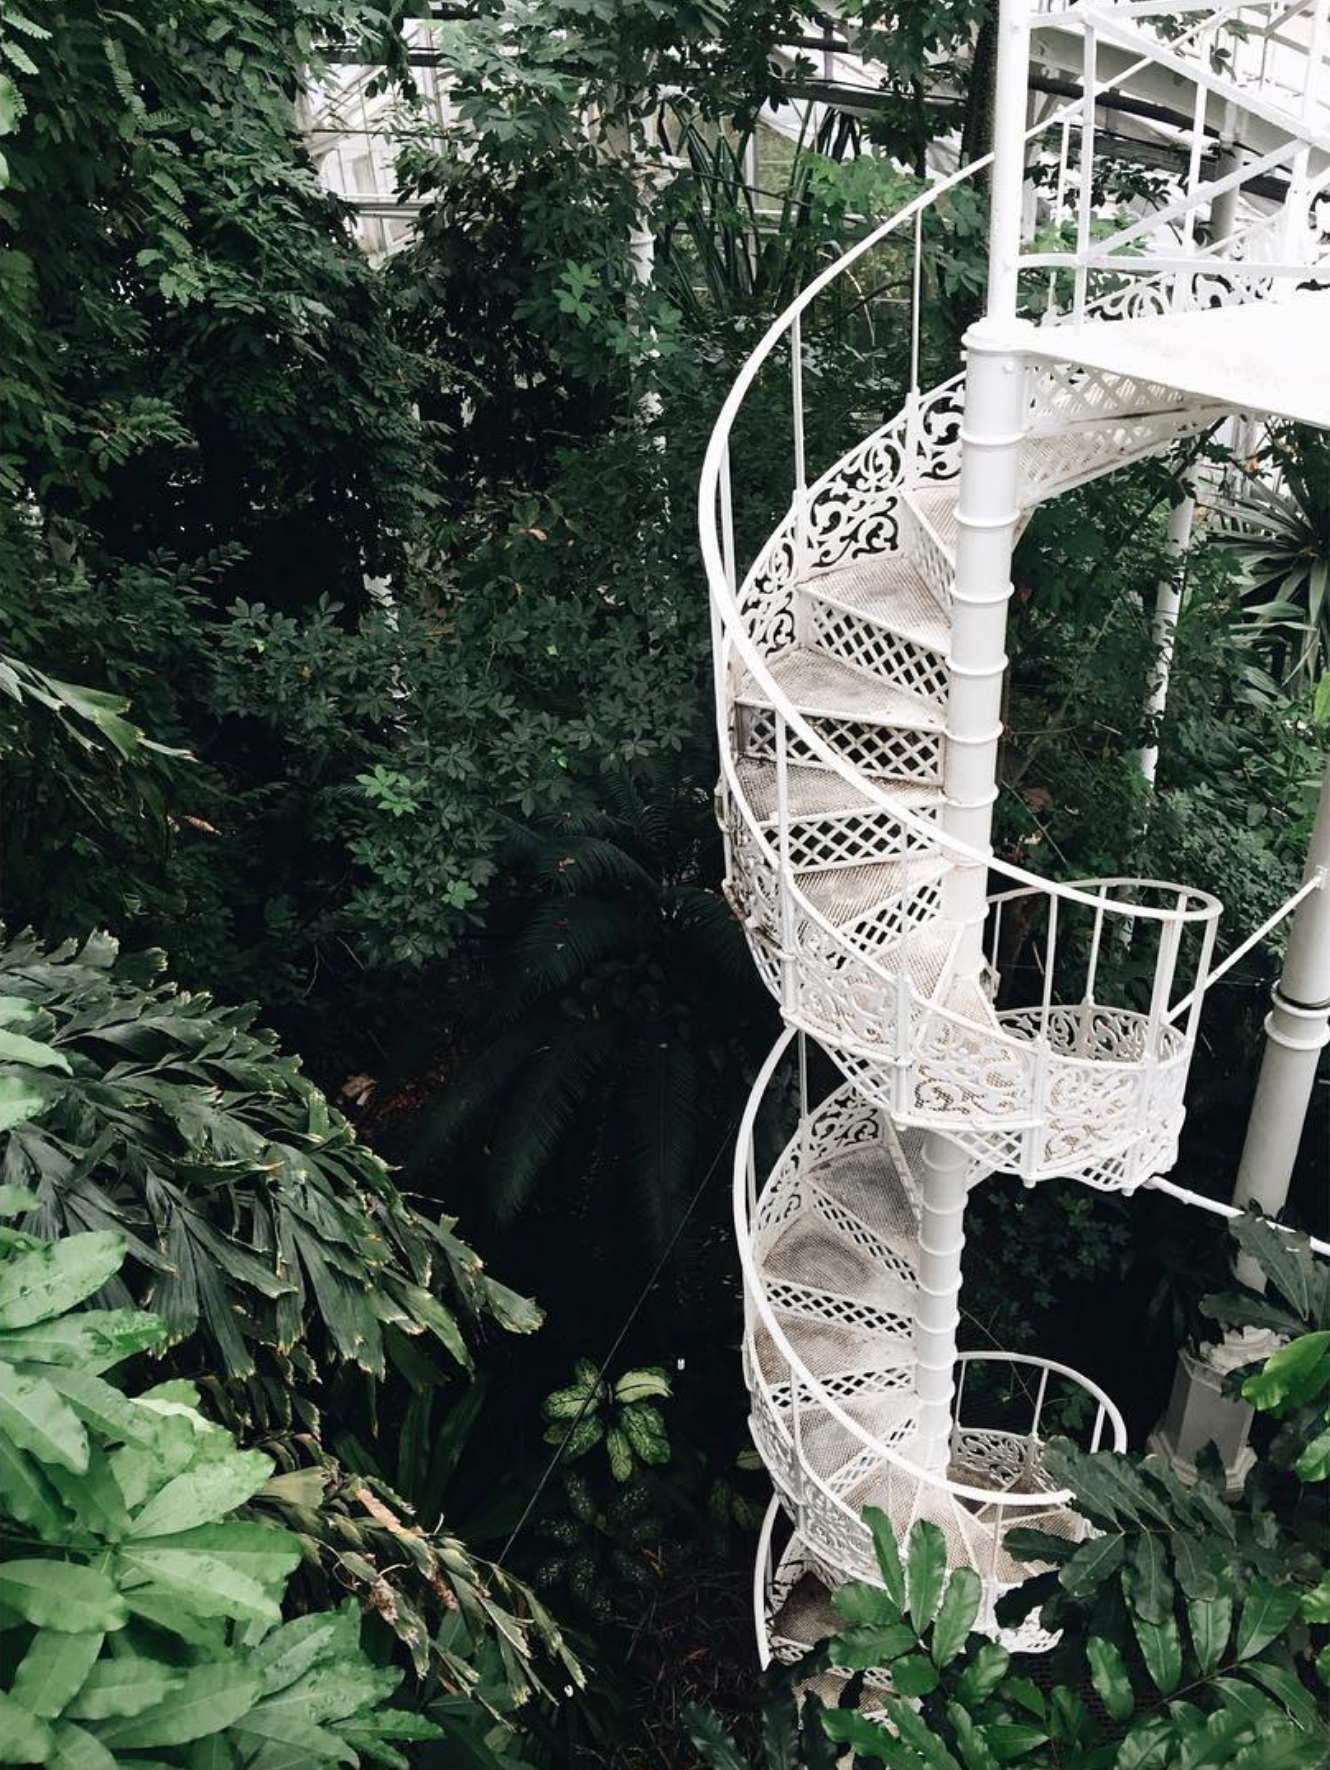 a photograph of a white staircase in the middle of green plants